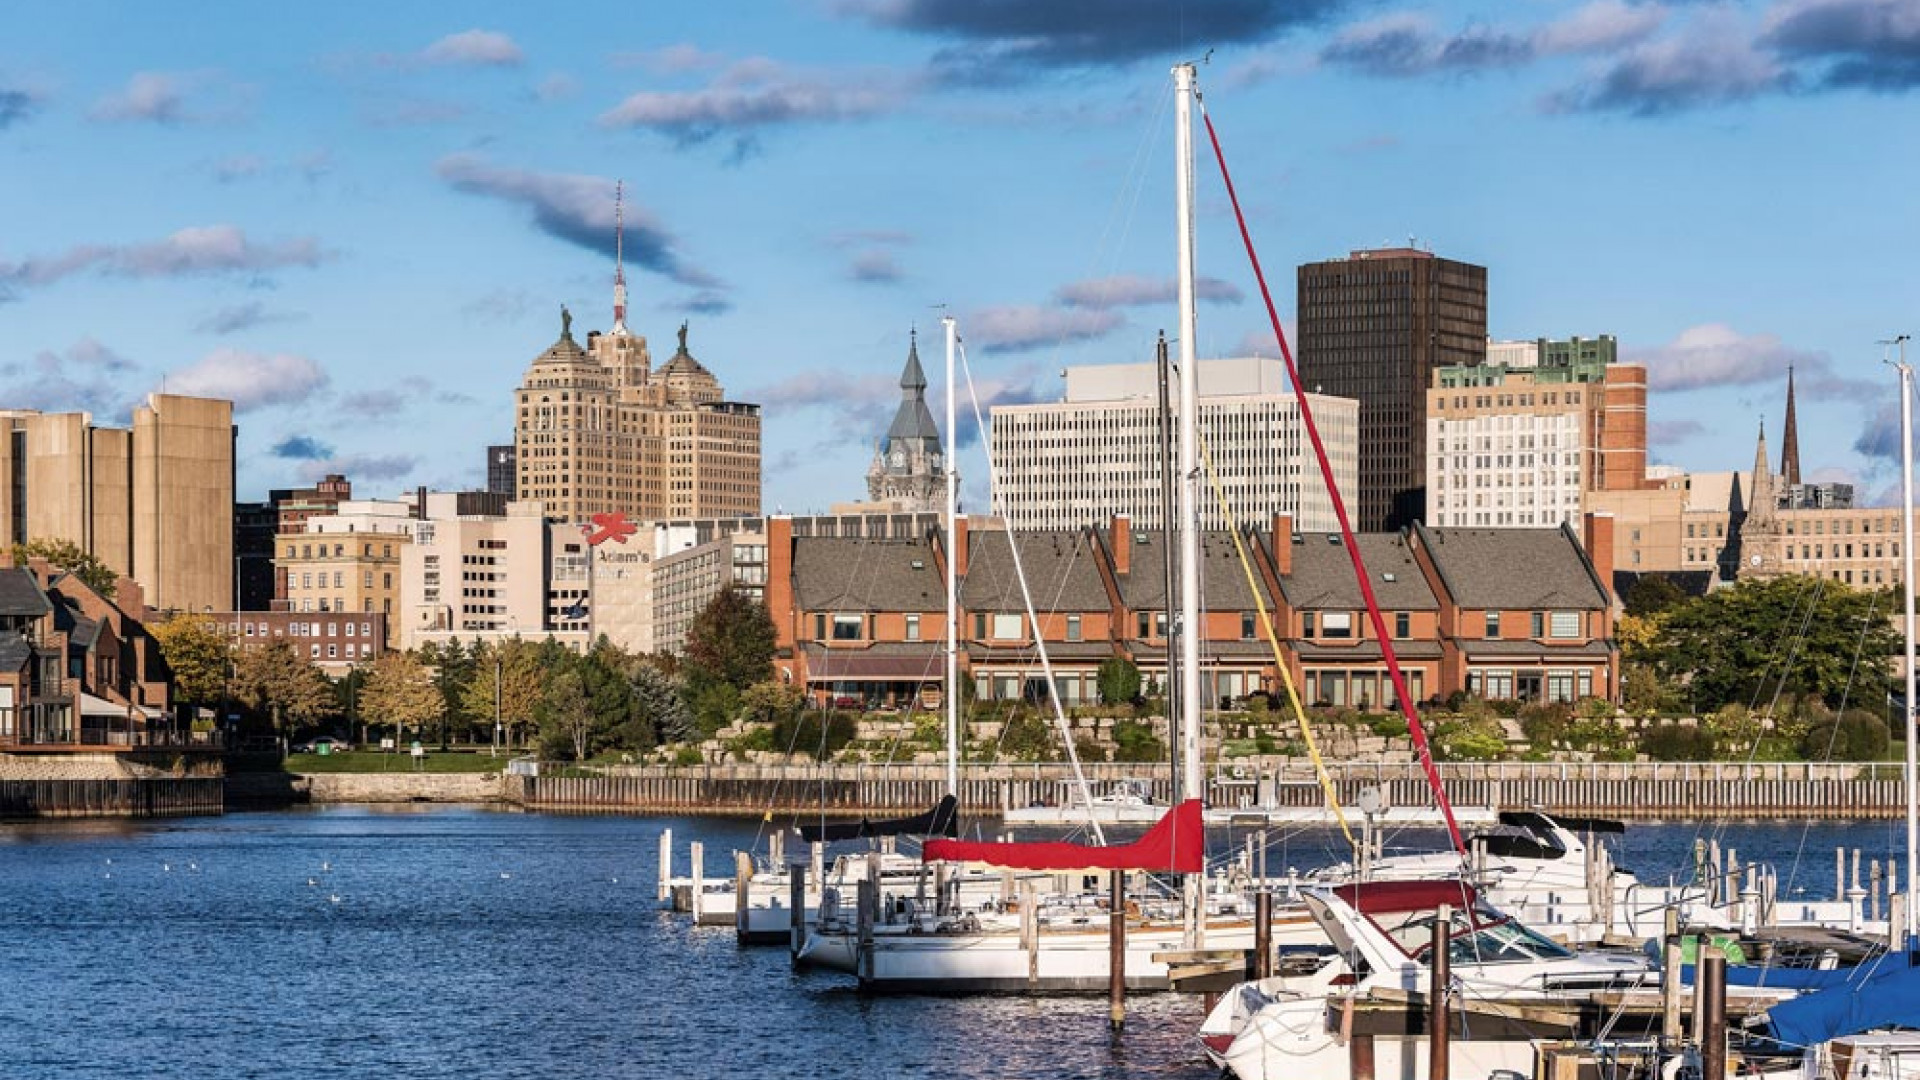 Basin Marina Park and city skyline, Buffalo, New York, USA